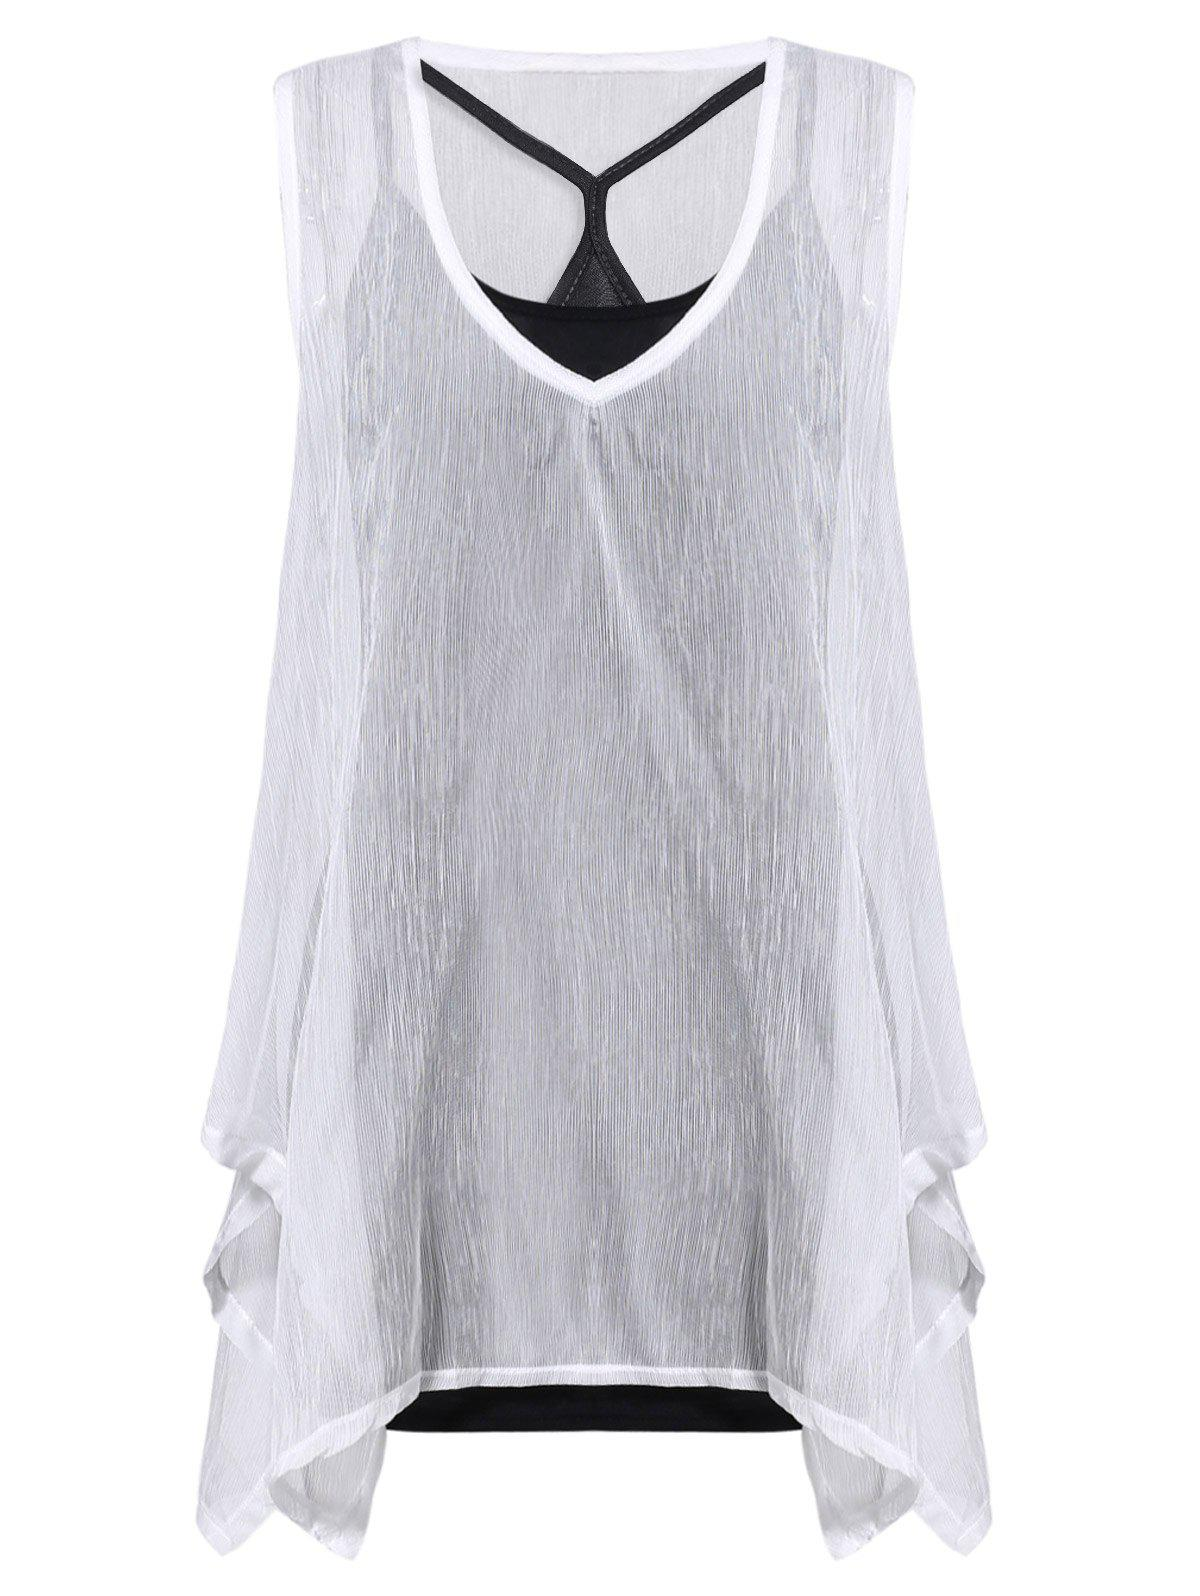 Stylish Women's V-Neck Sleeveless Solid Color Asymmetric Top Twinset - WHITE ONE SIZE(FIT SIZE XS TO M)